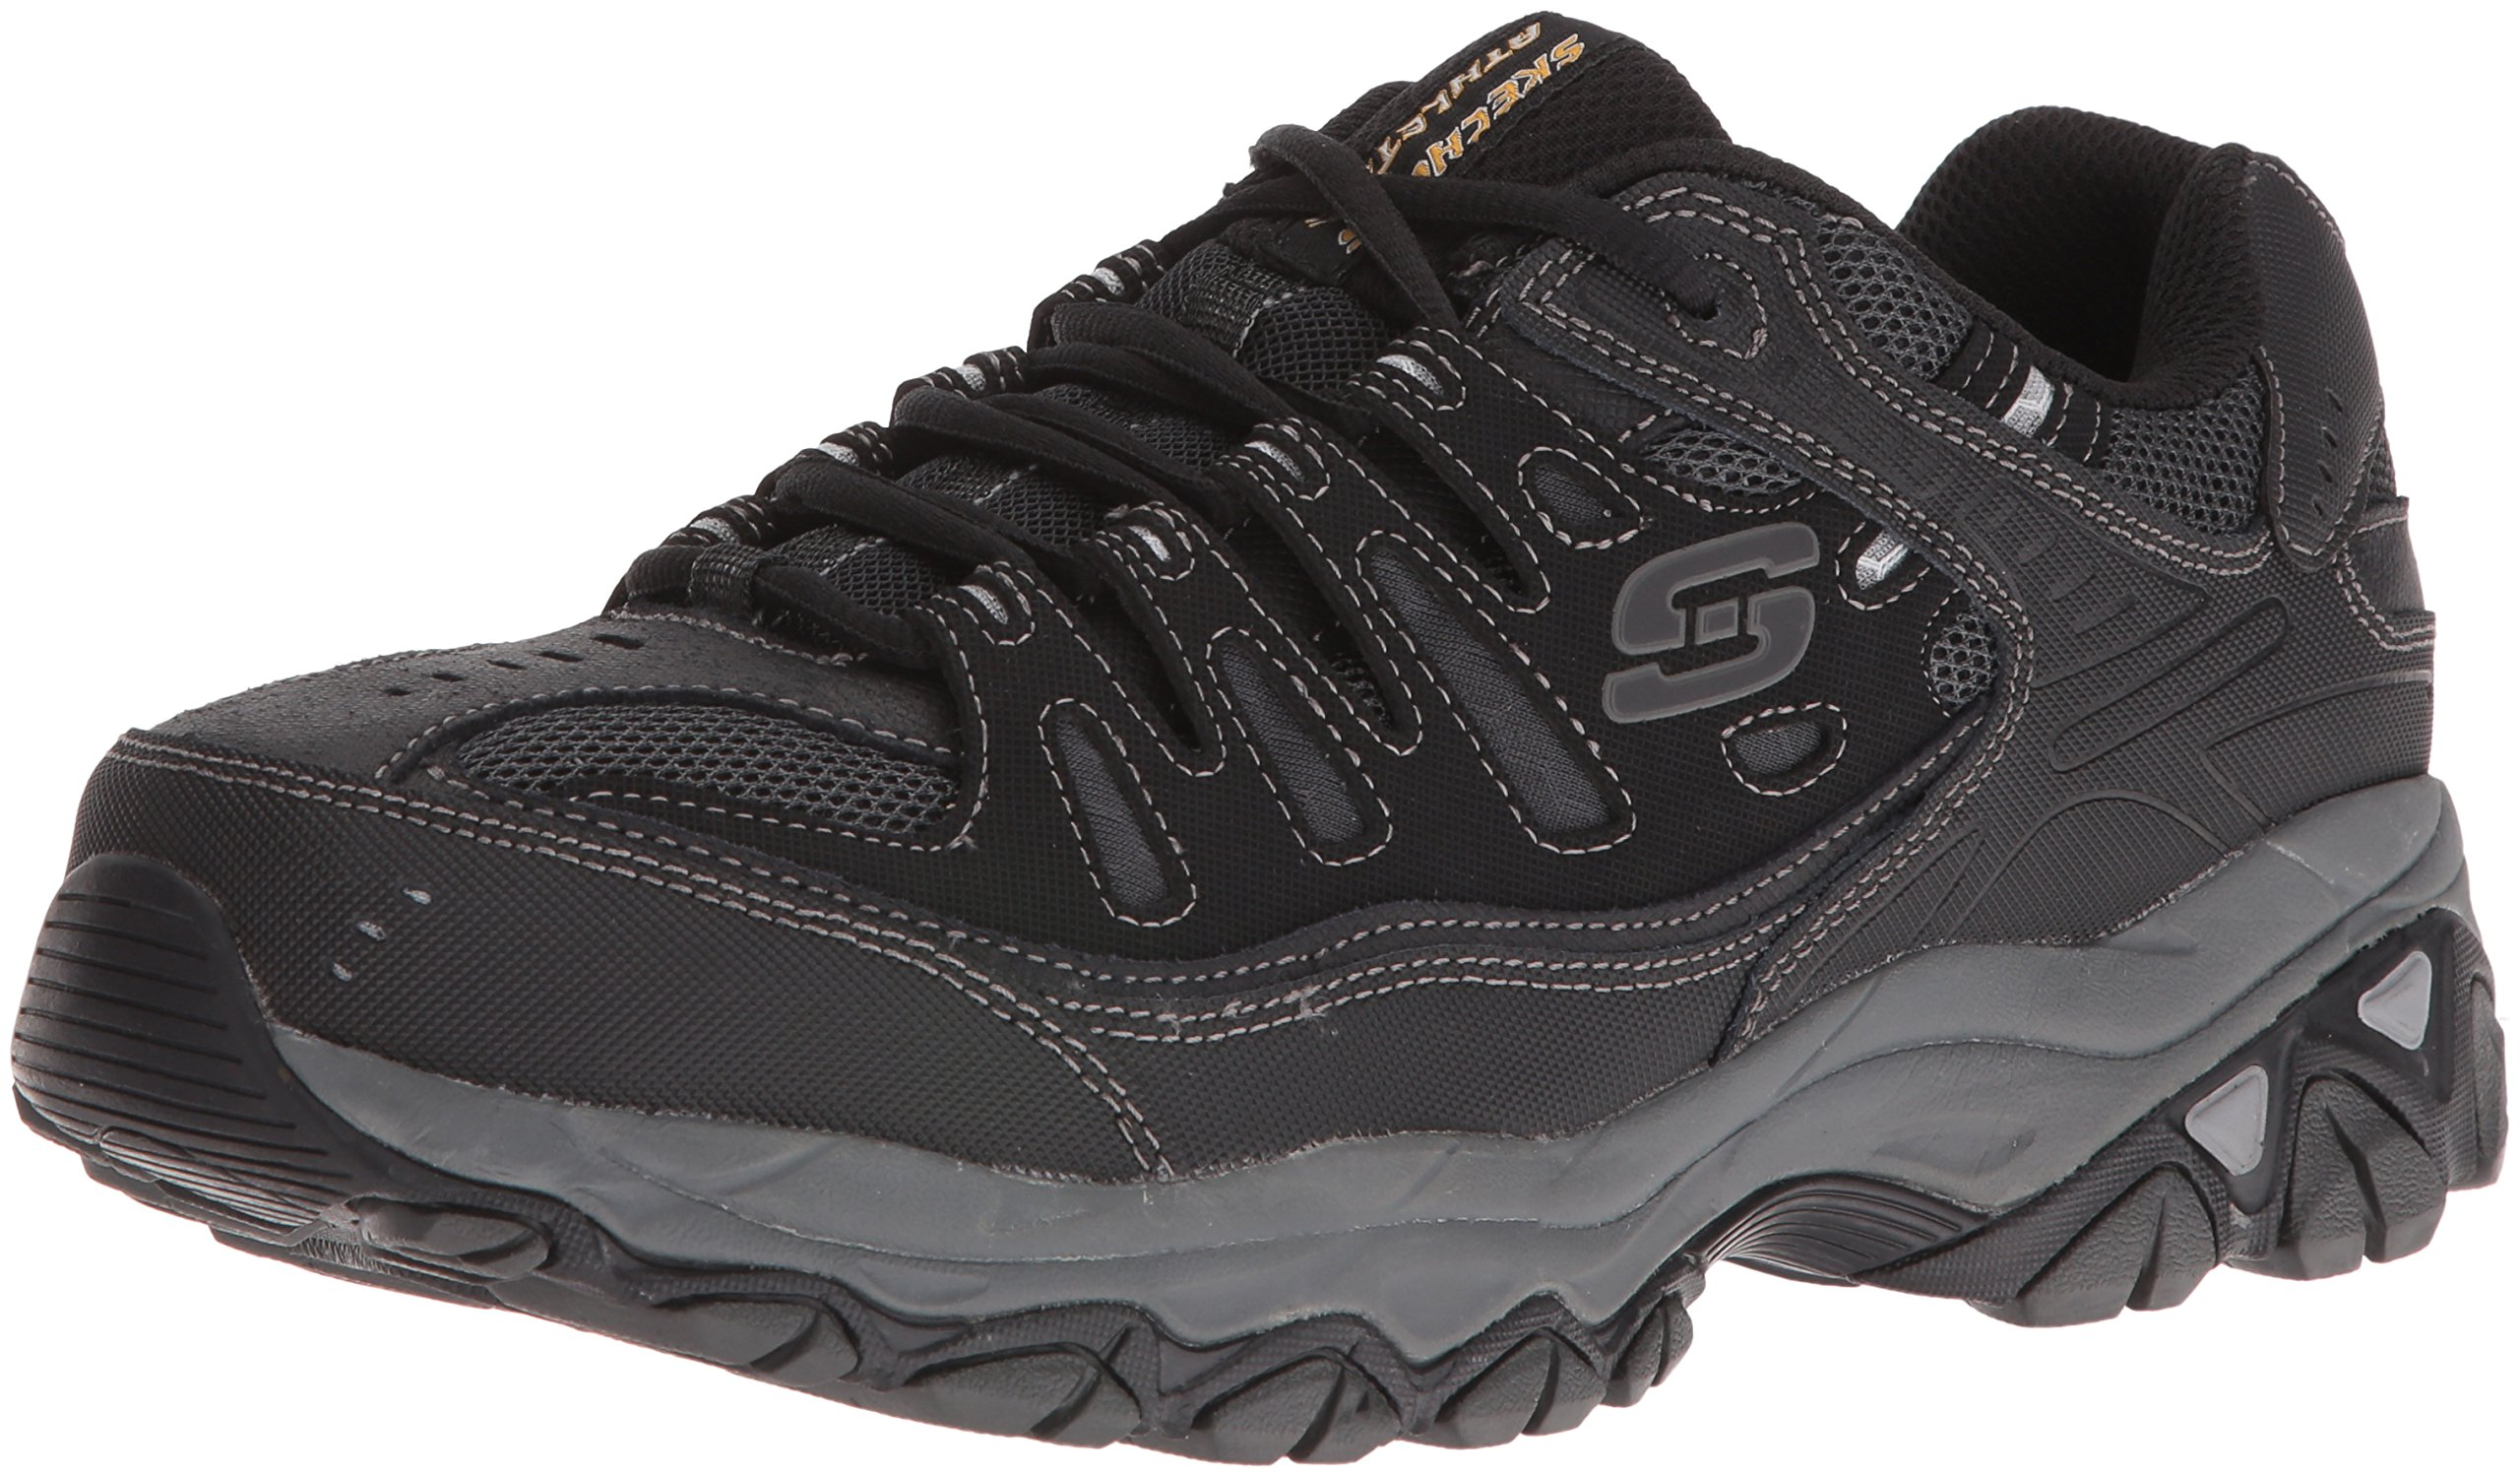 Skechers Men's AFTER BURN M.FIT Memory Foam Lace-Up Sneaker, Black, 10 4E US by Skechers